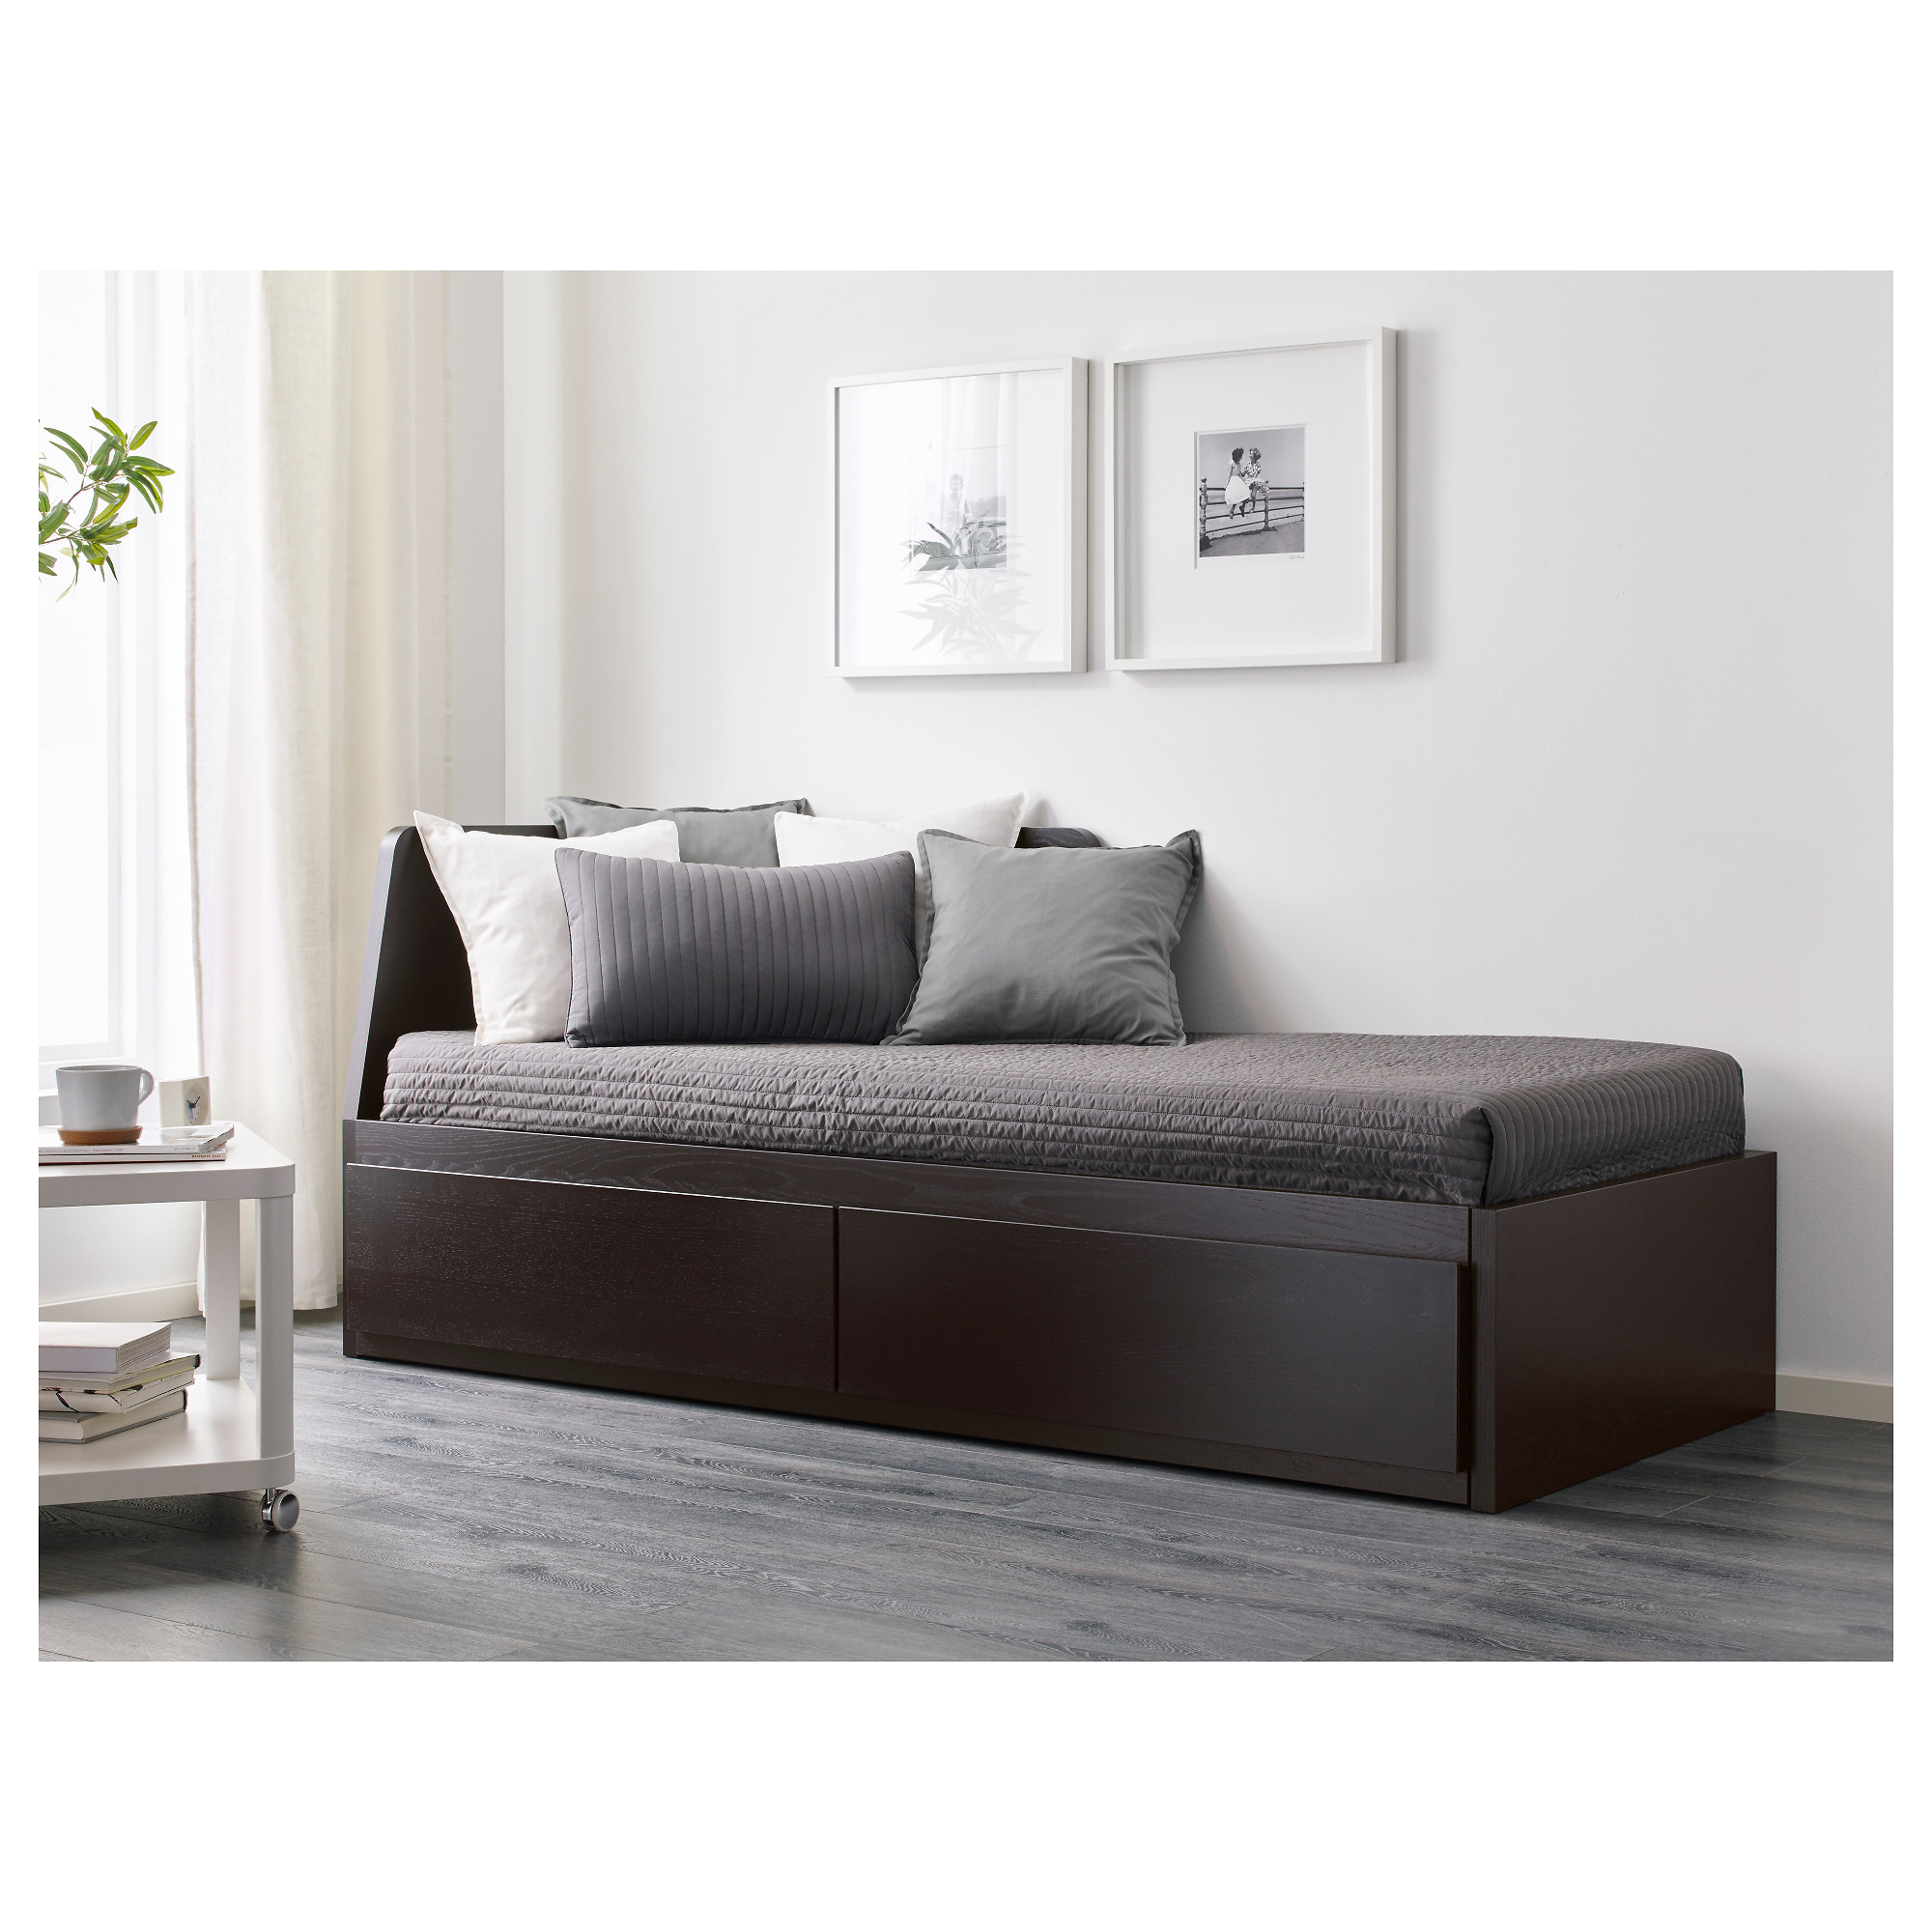 Daybed With 2 Drawers/2 Mattresses FLEKKE Black Brown, Meistervik Firm